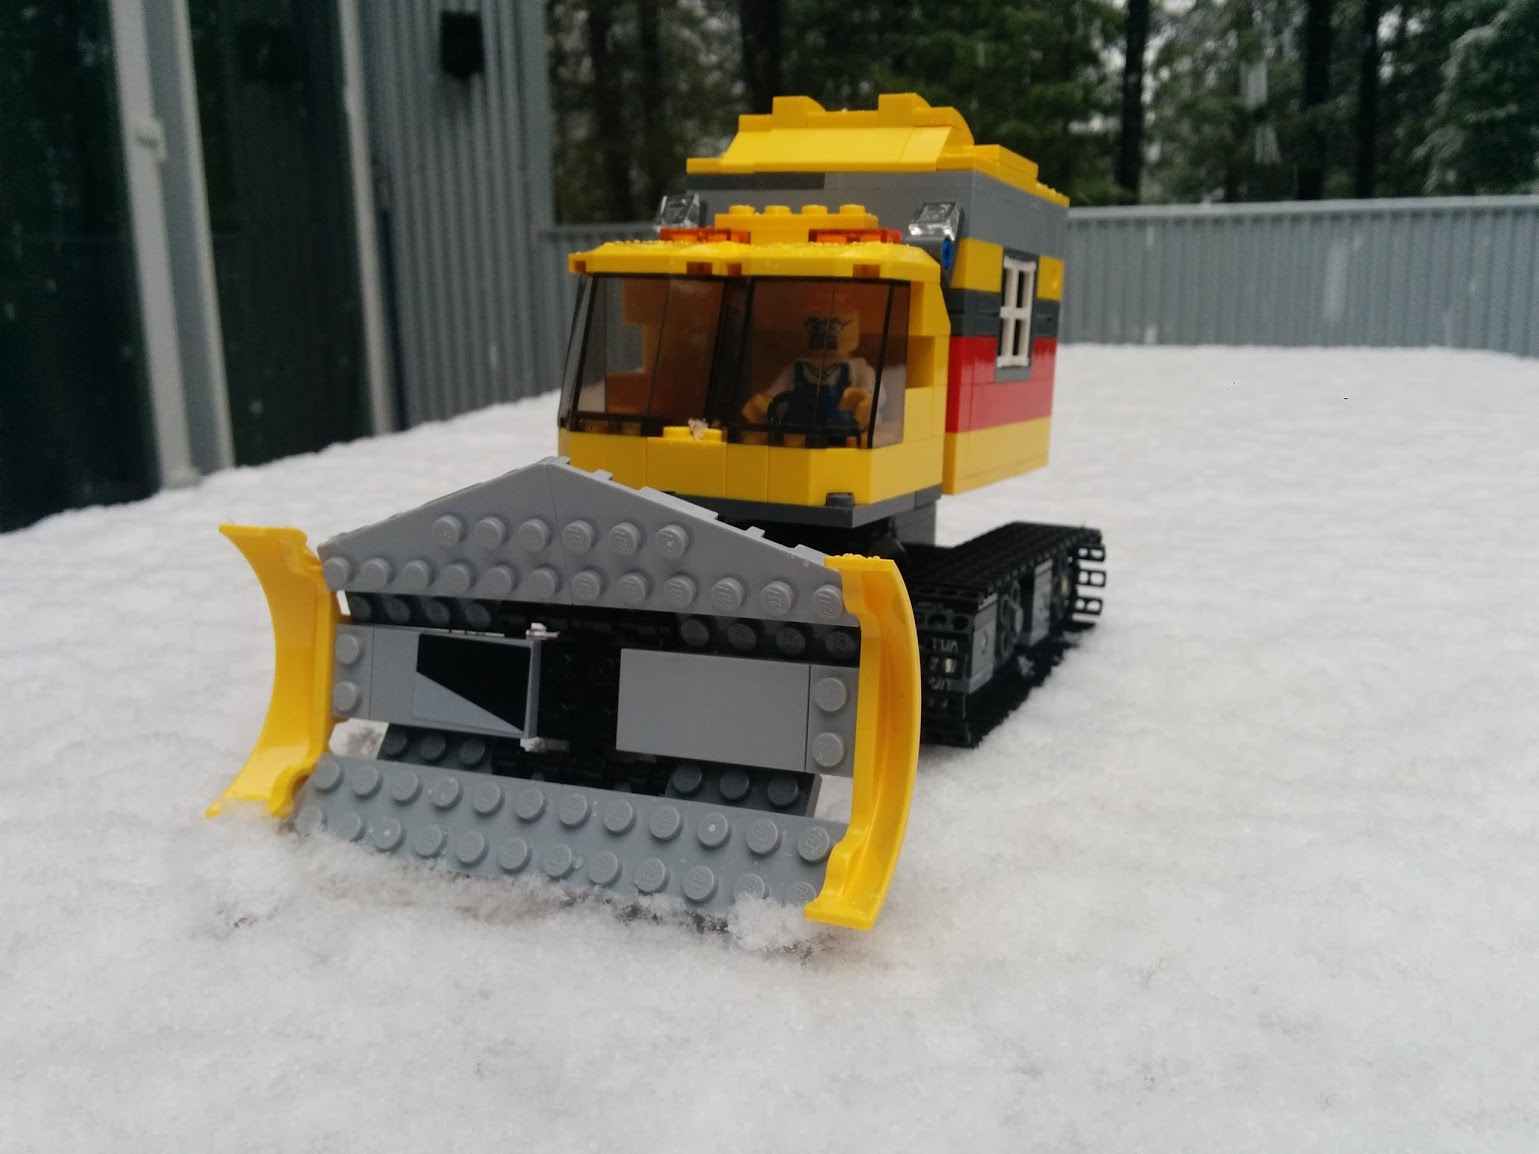 Never too old! Check out this Lego Snowcat